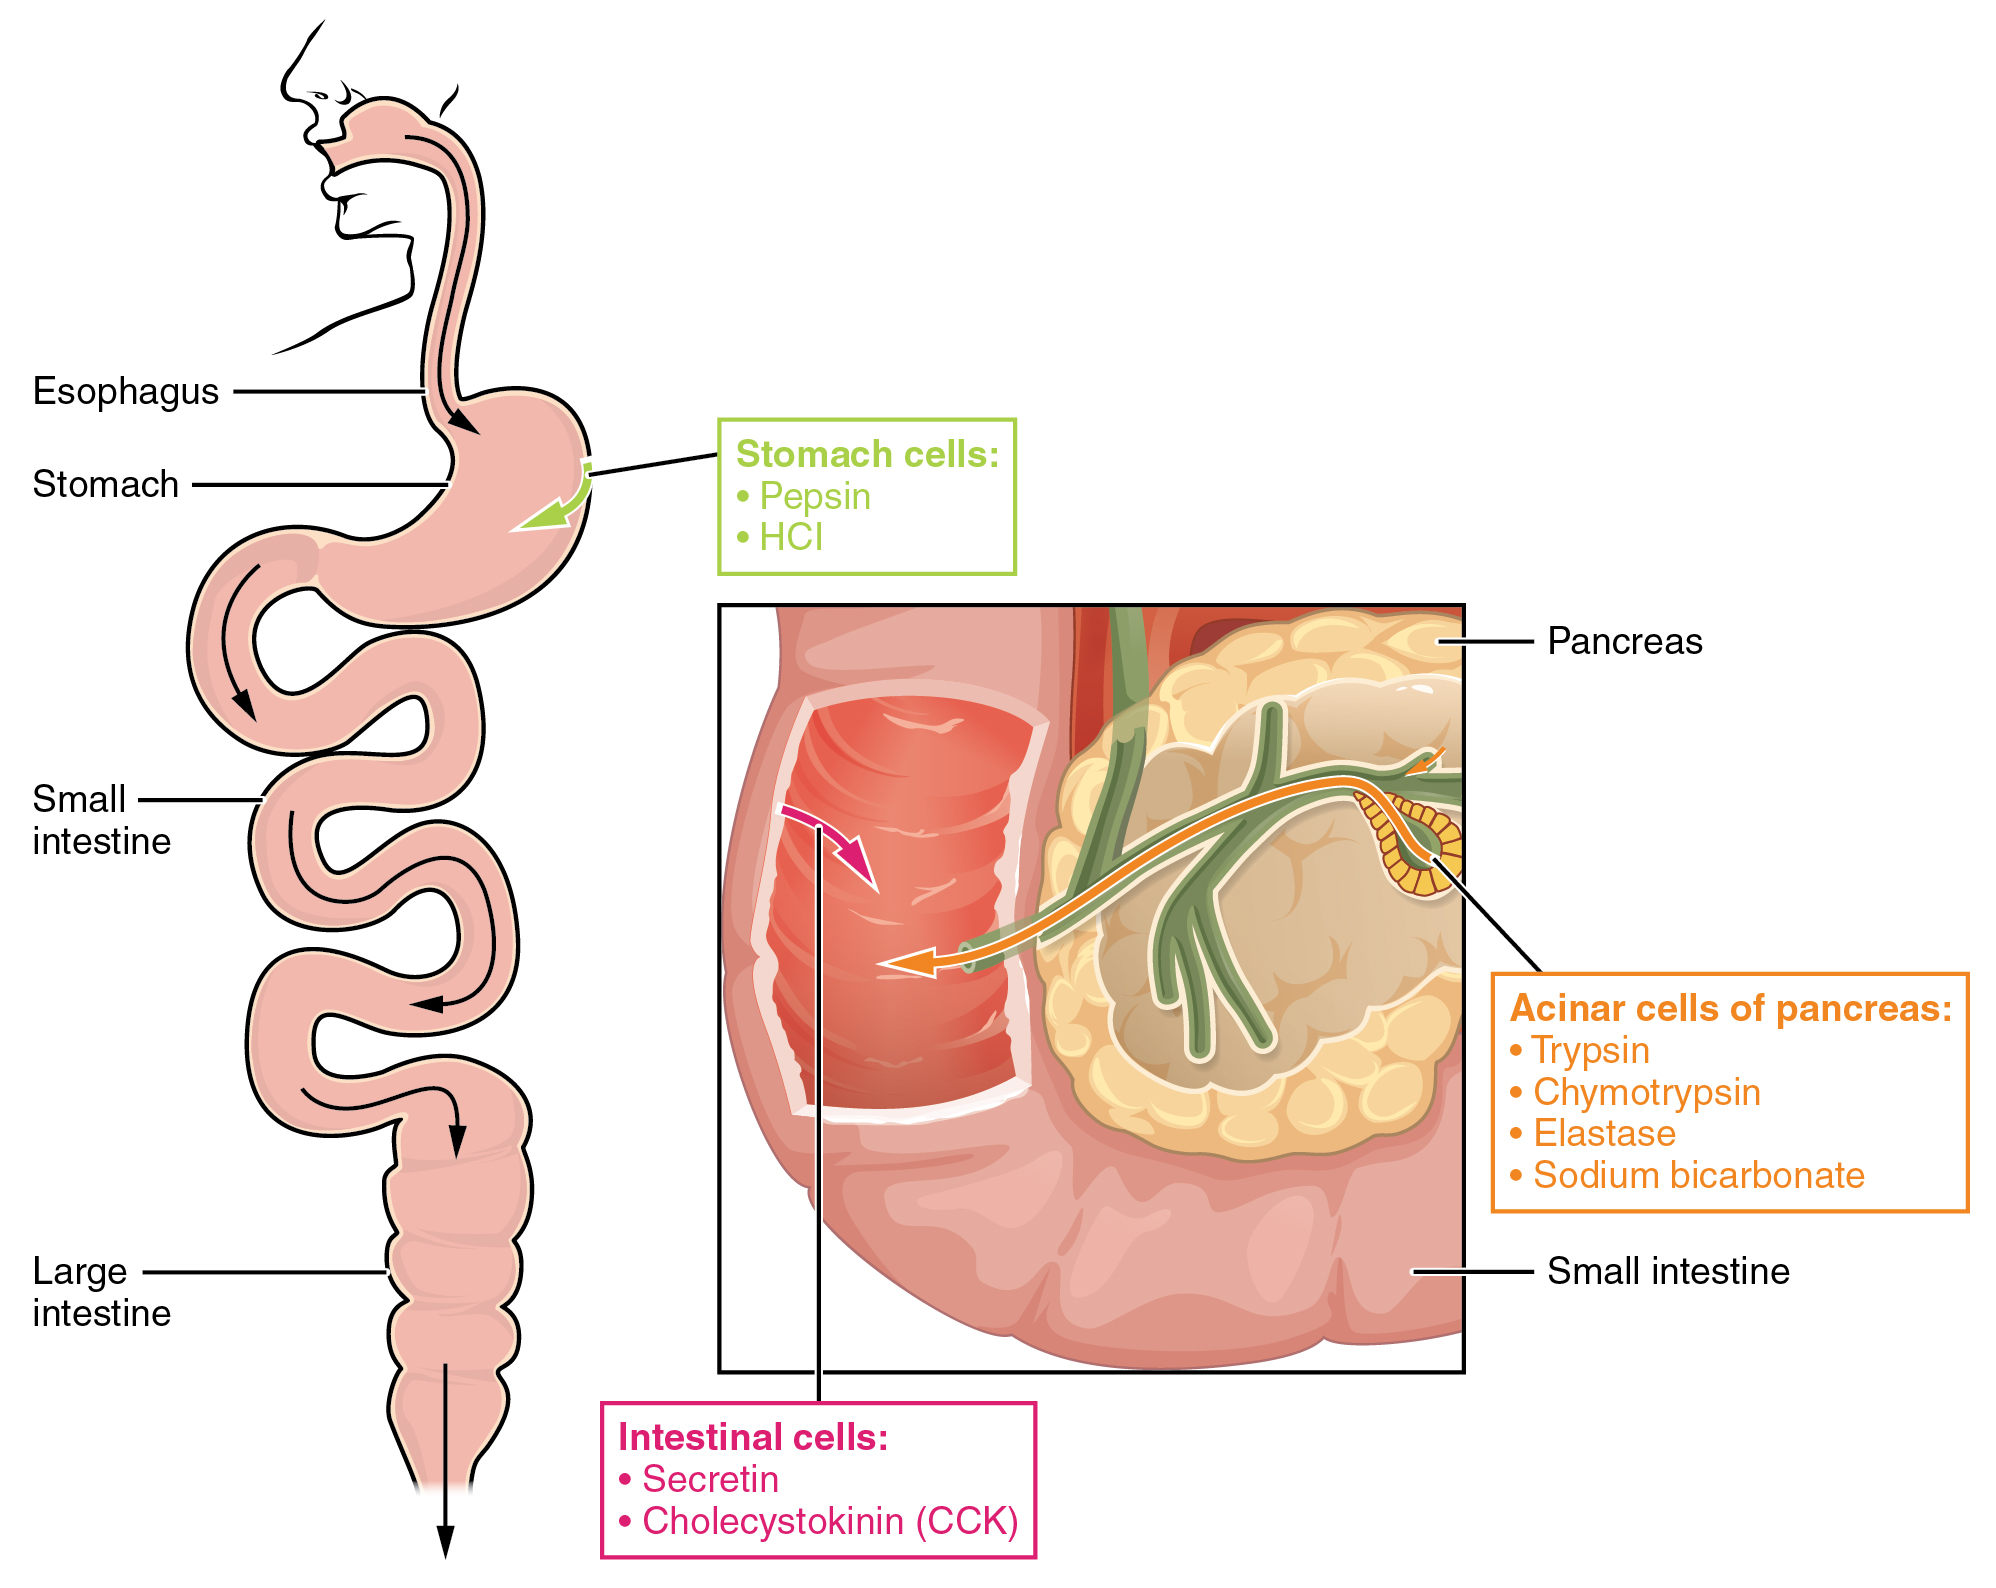 The left panel shows the main organs of the digestive system, and the right panel shows a magnified view of the intestine. Text callouts indicate the different protein digesting enzymes produced in different organs.